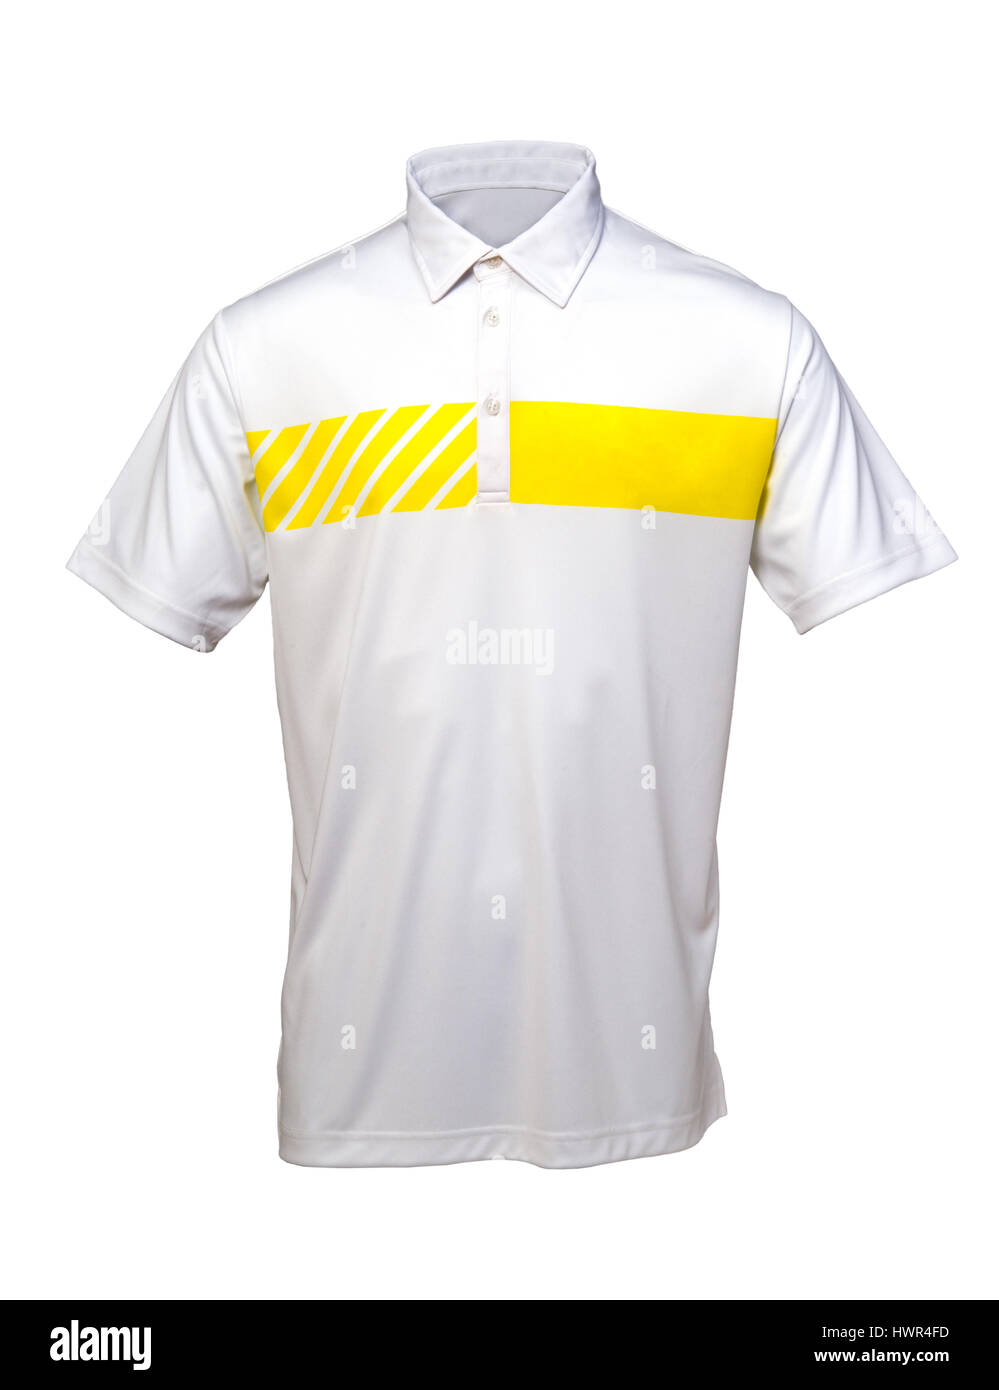 White and yellow golf tee shirt for man or woman on white background - Stock Image